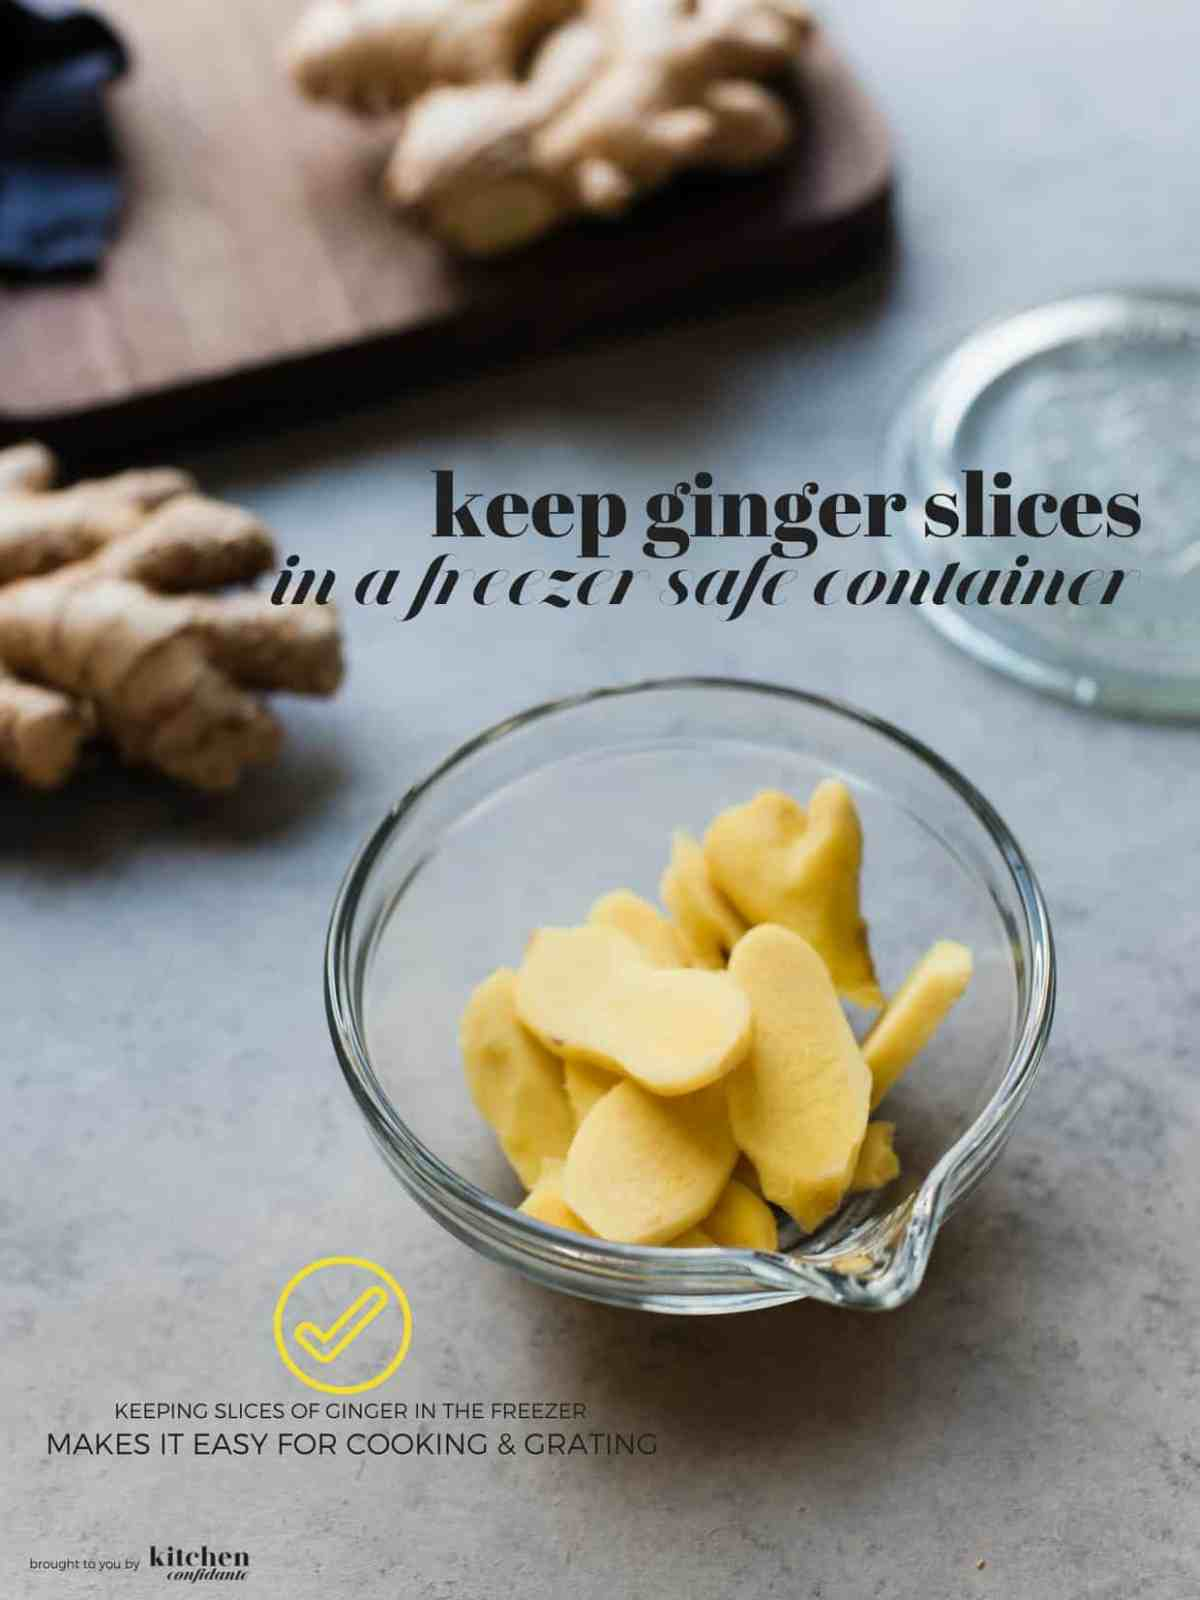 Fresh ginger root peeled and sliced in a glass bowl.